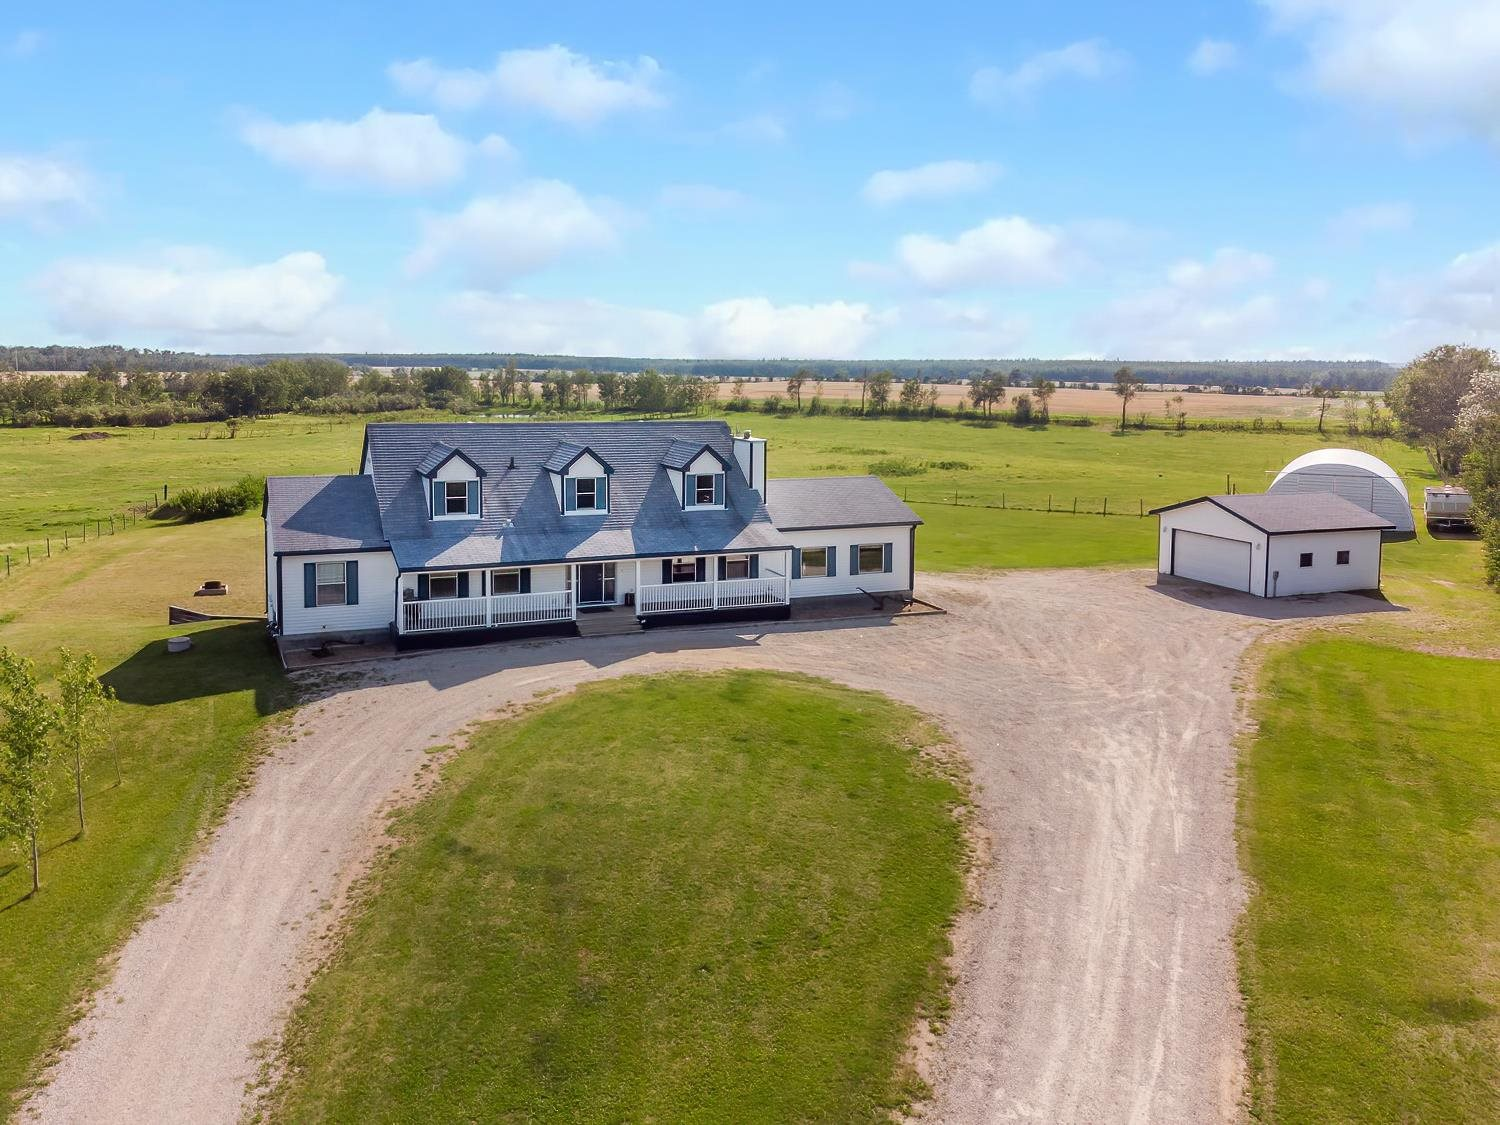 Amazing opportunity! This 8.84 acreage is located just minutes from Cold Lake and the back gate access to 4 Wing.  If you are looking for a peaceful country setting without the drive THIS IS THE ONE FOR YOU! It features attached heated double garage, double detached garage and 30x40 Quonset. This home has 6 bedrooms, 3 full bathrooms and 2 half baths offering space for everyone in the family. Whether you are curled up in front of the wood burning fireplace or sitting on the spacious front porch, the views are breathtaking. Over 2500sq feet on the main levels. Main floor offers Master with walk in closets and ensuite bath, bright large kitchen with island and roomy living and dinning room. 2 more bedrooms and 2 bathrooms finishes off the first floor. The upper level to this home is charming with it's large window dormers. 1 bedroom and 1 bath with a bonus living area. Let's not forget the extra 1800sq feet of finished space with in floor heating, 2 bedrooms,1 bath, Rec Room with bar and walk out basement.